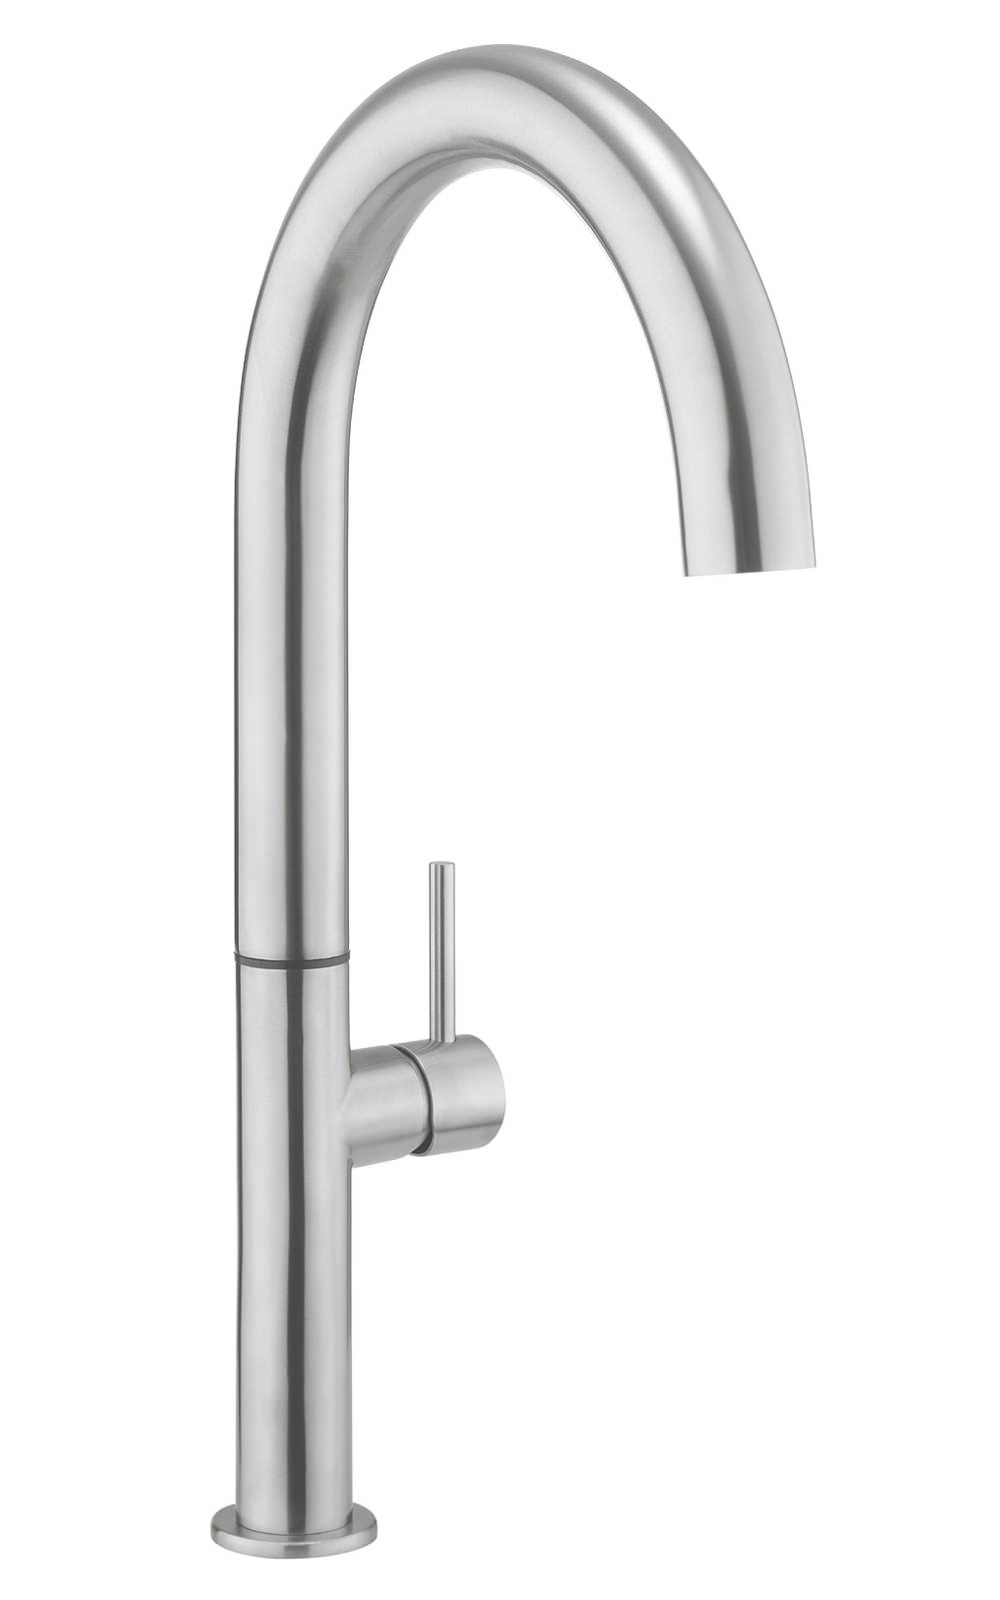 Crosswater cucina tube round tall stainless steel kitchen - Round stainless steel kitchen sink ...